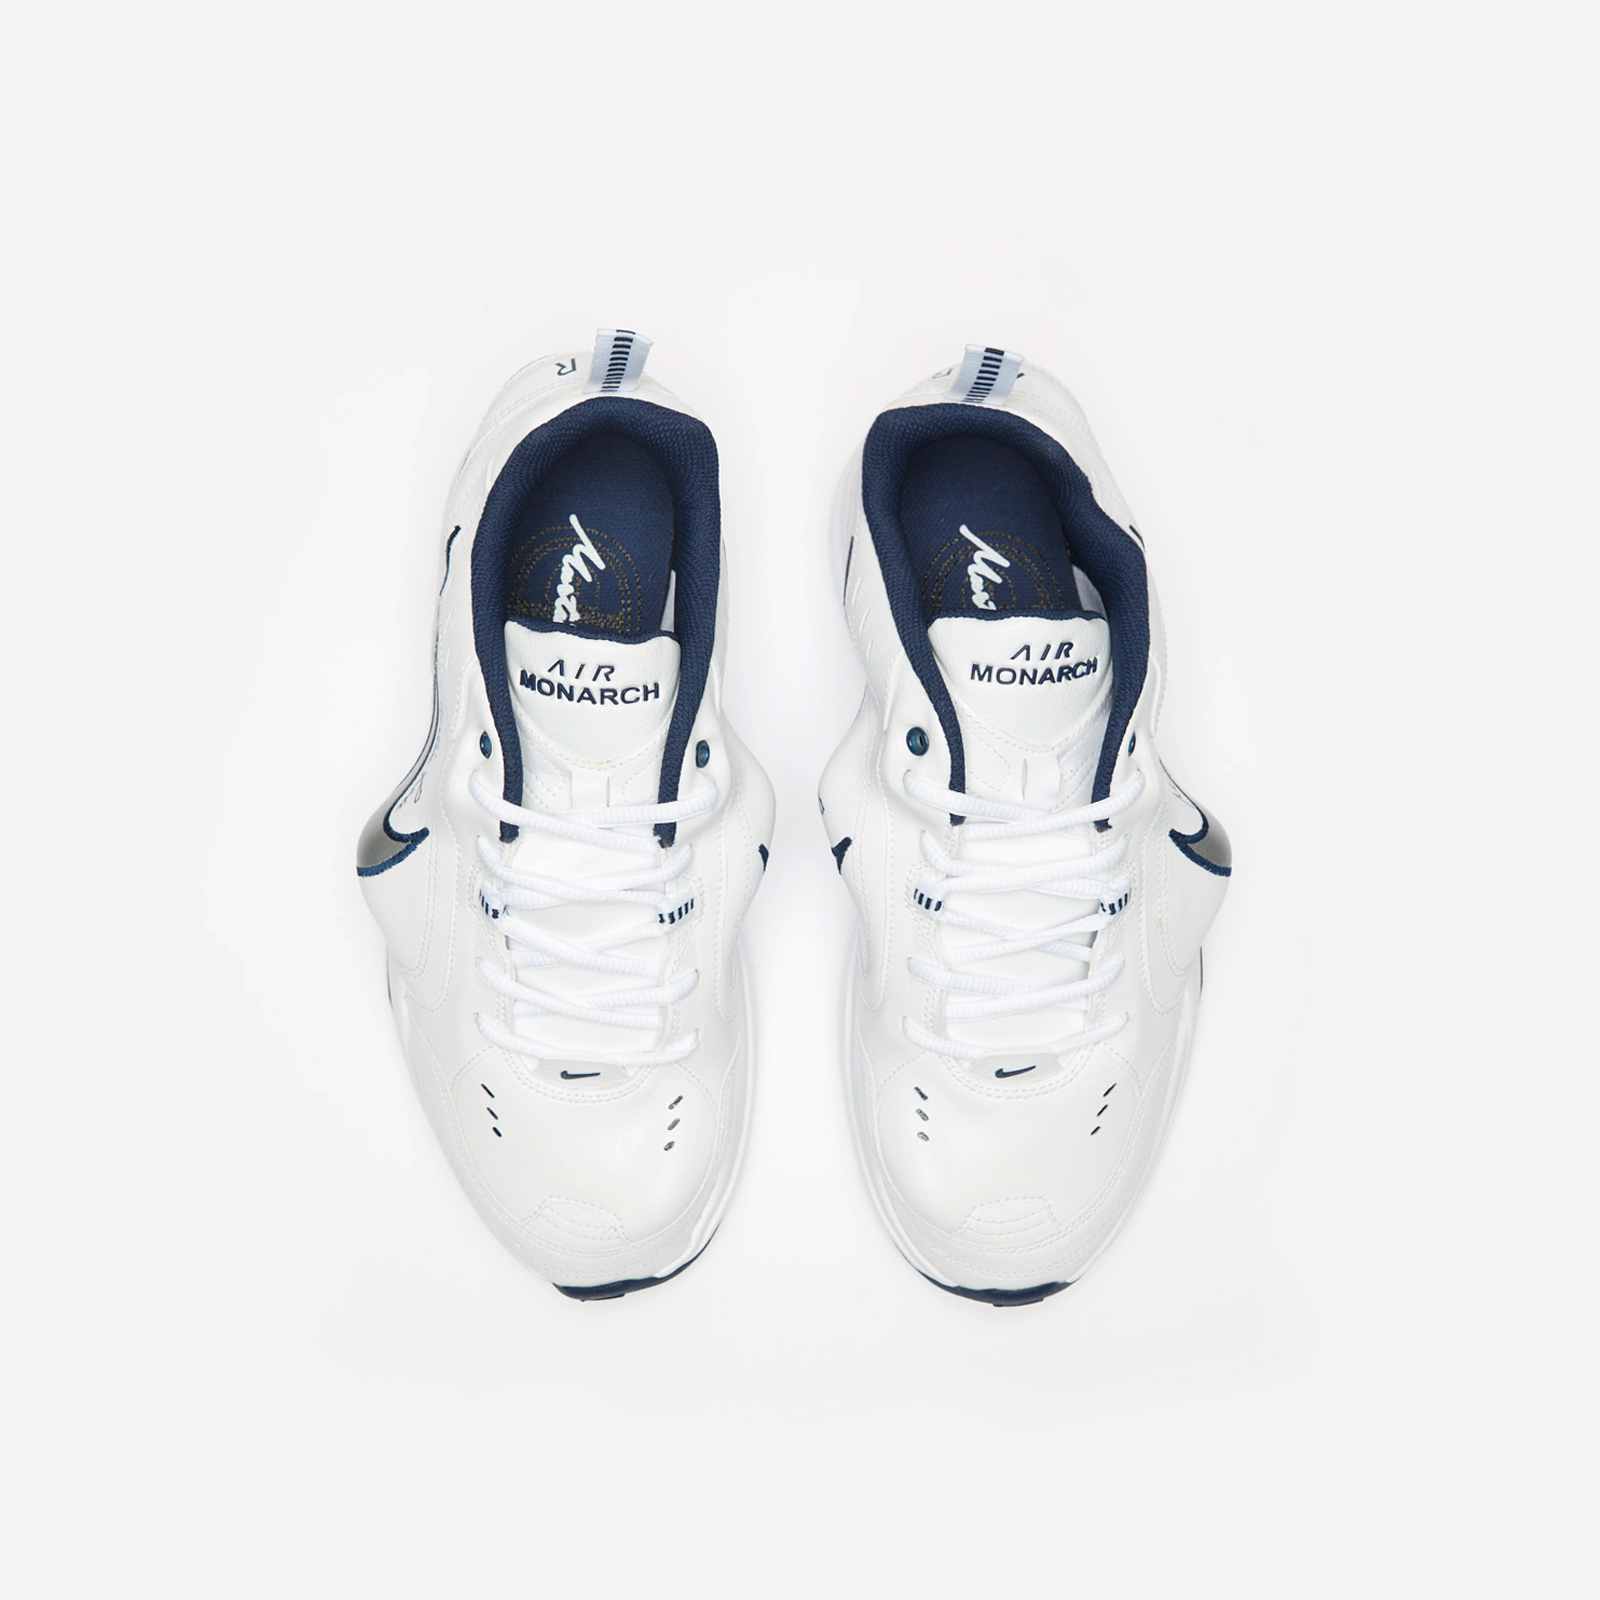 8a4d24dd2bc367 Nike Air Monarch IV   Martine Rose - At3147-100 - Sneakersnstuff ...